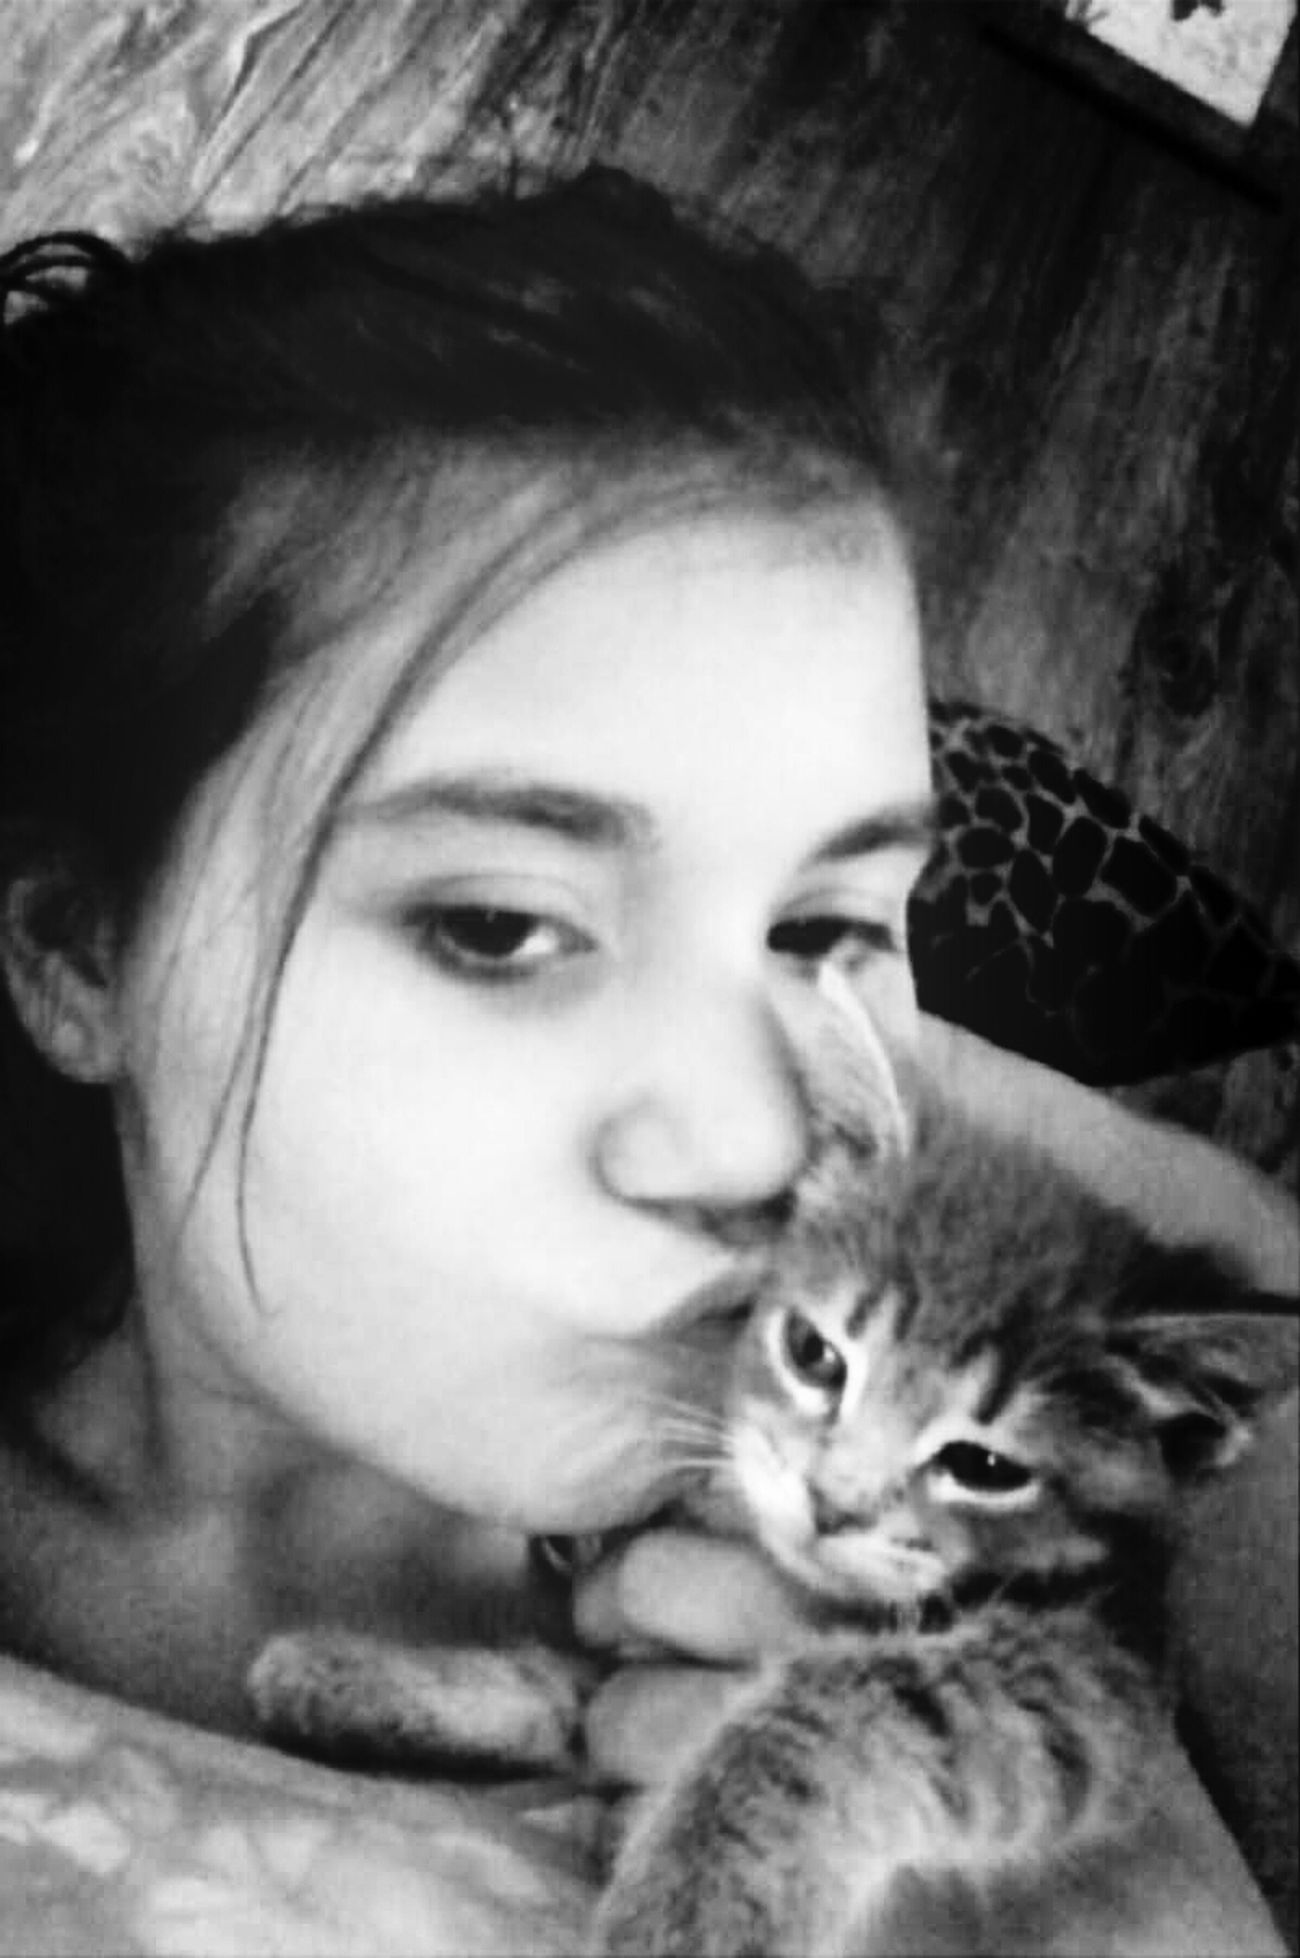 me and my kitty Kittylove My New Kitty :)